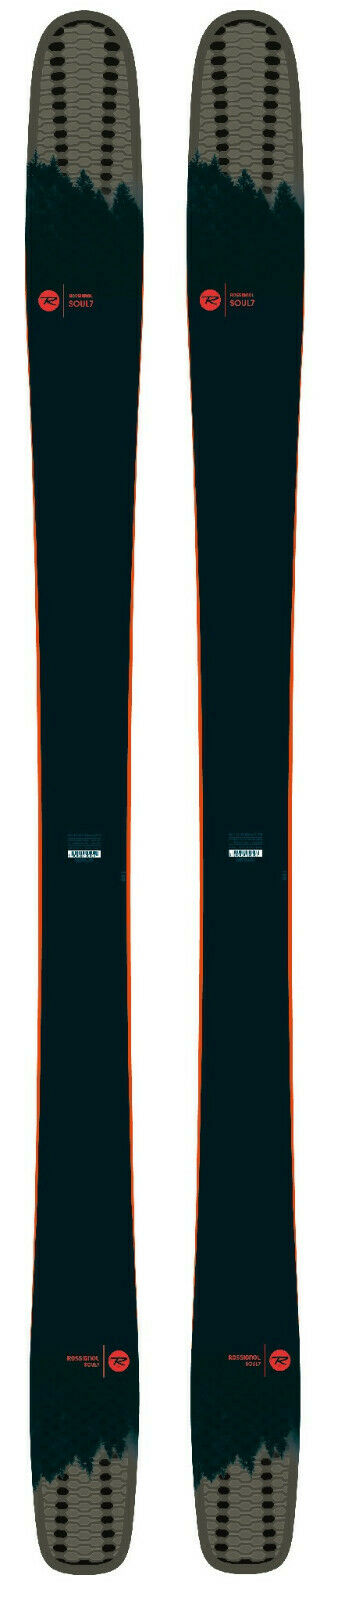 Rossignol Soul 7 HD snow skis 188cm, NEW 2020 (binding options available)